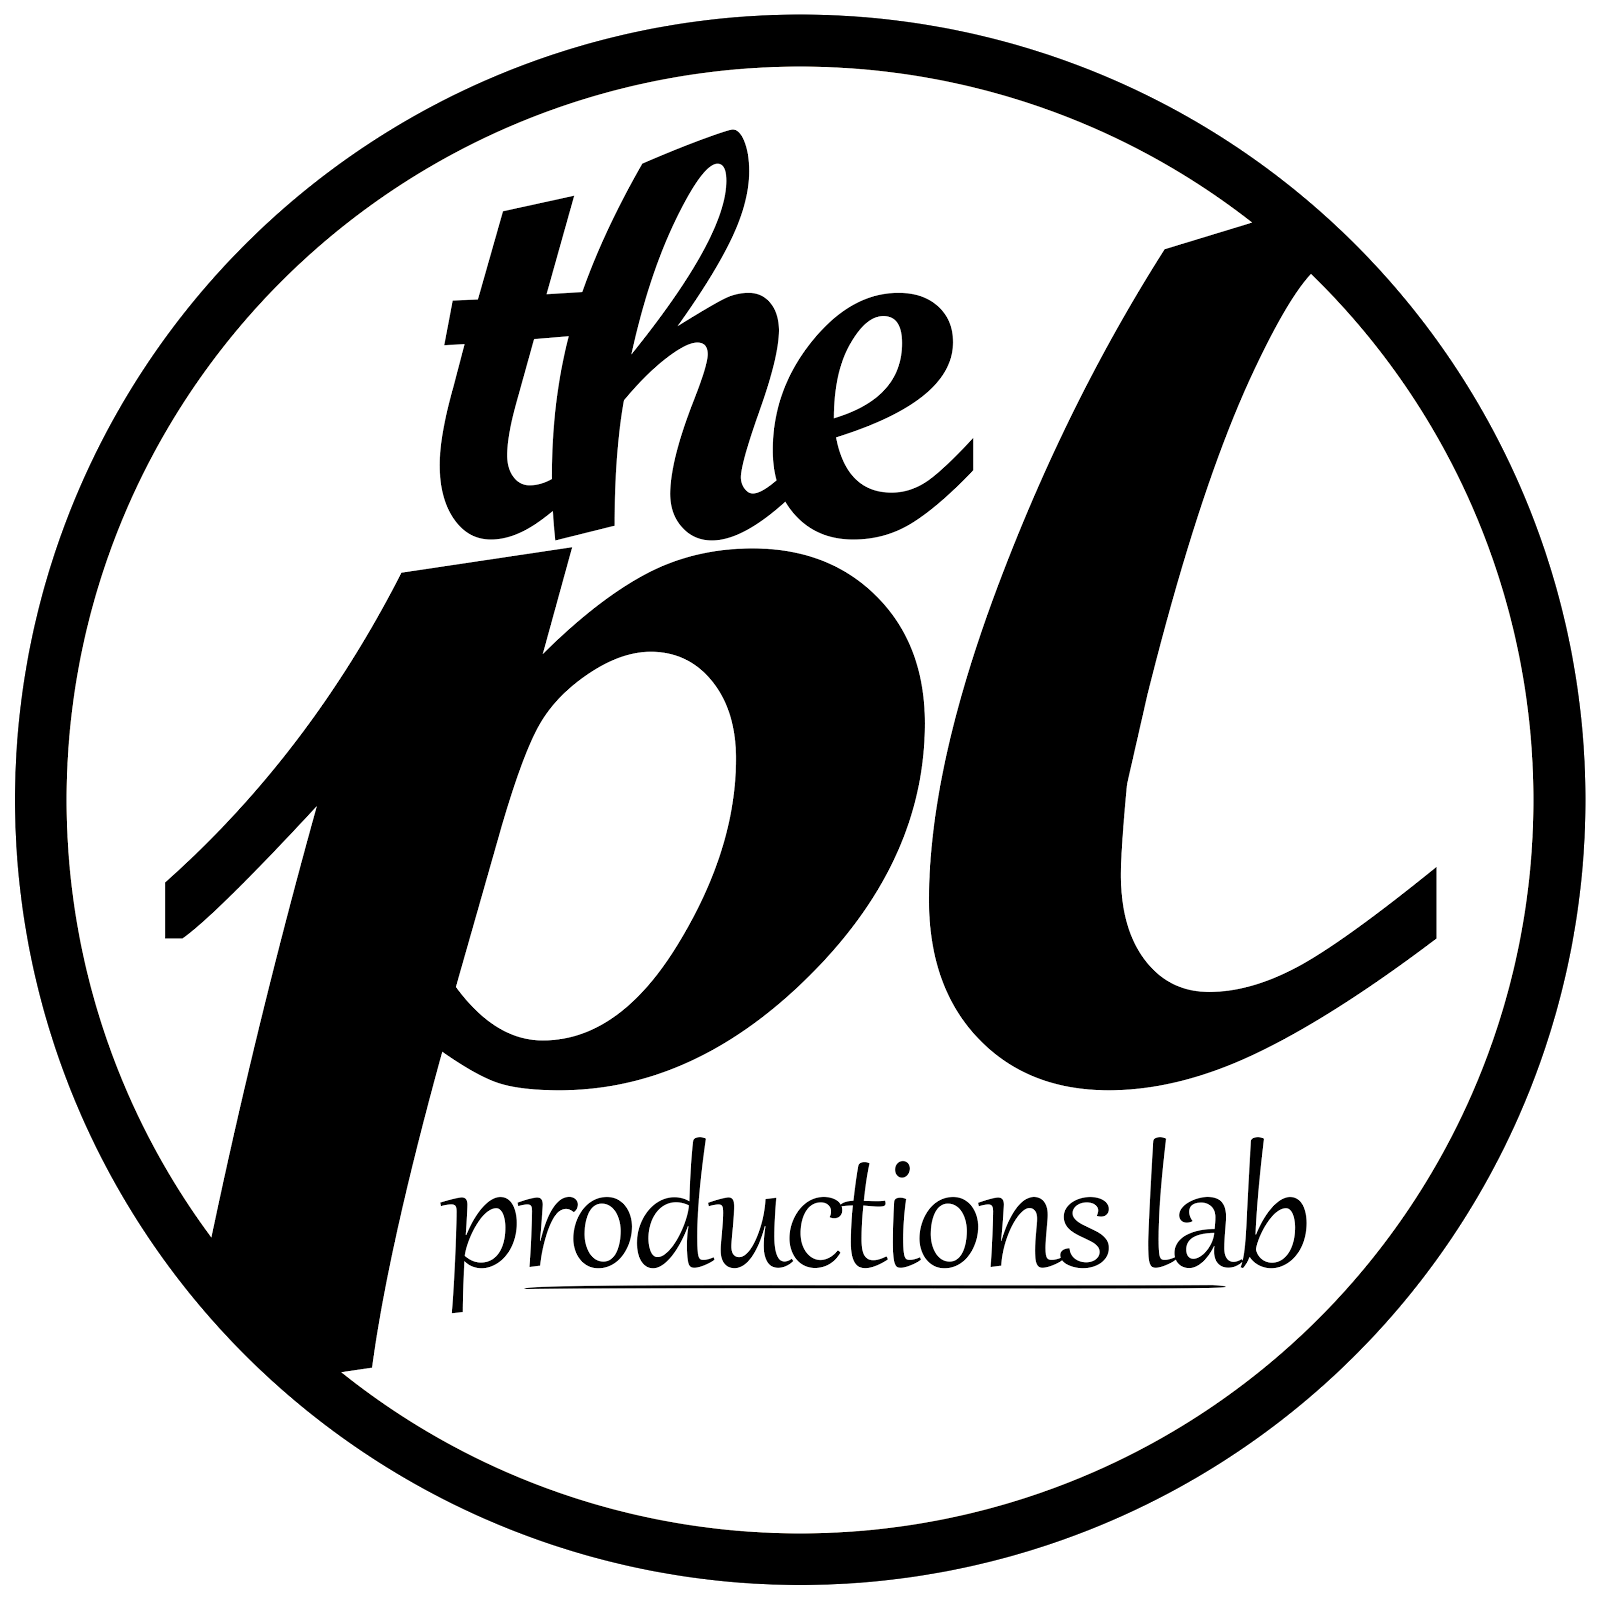 Productions Lab